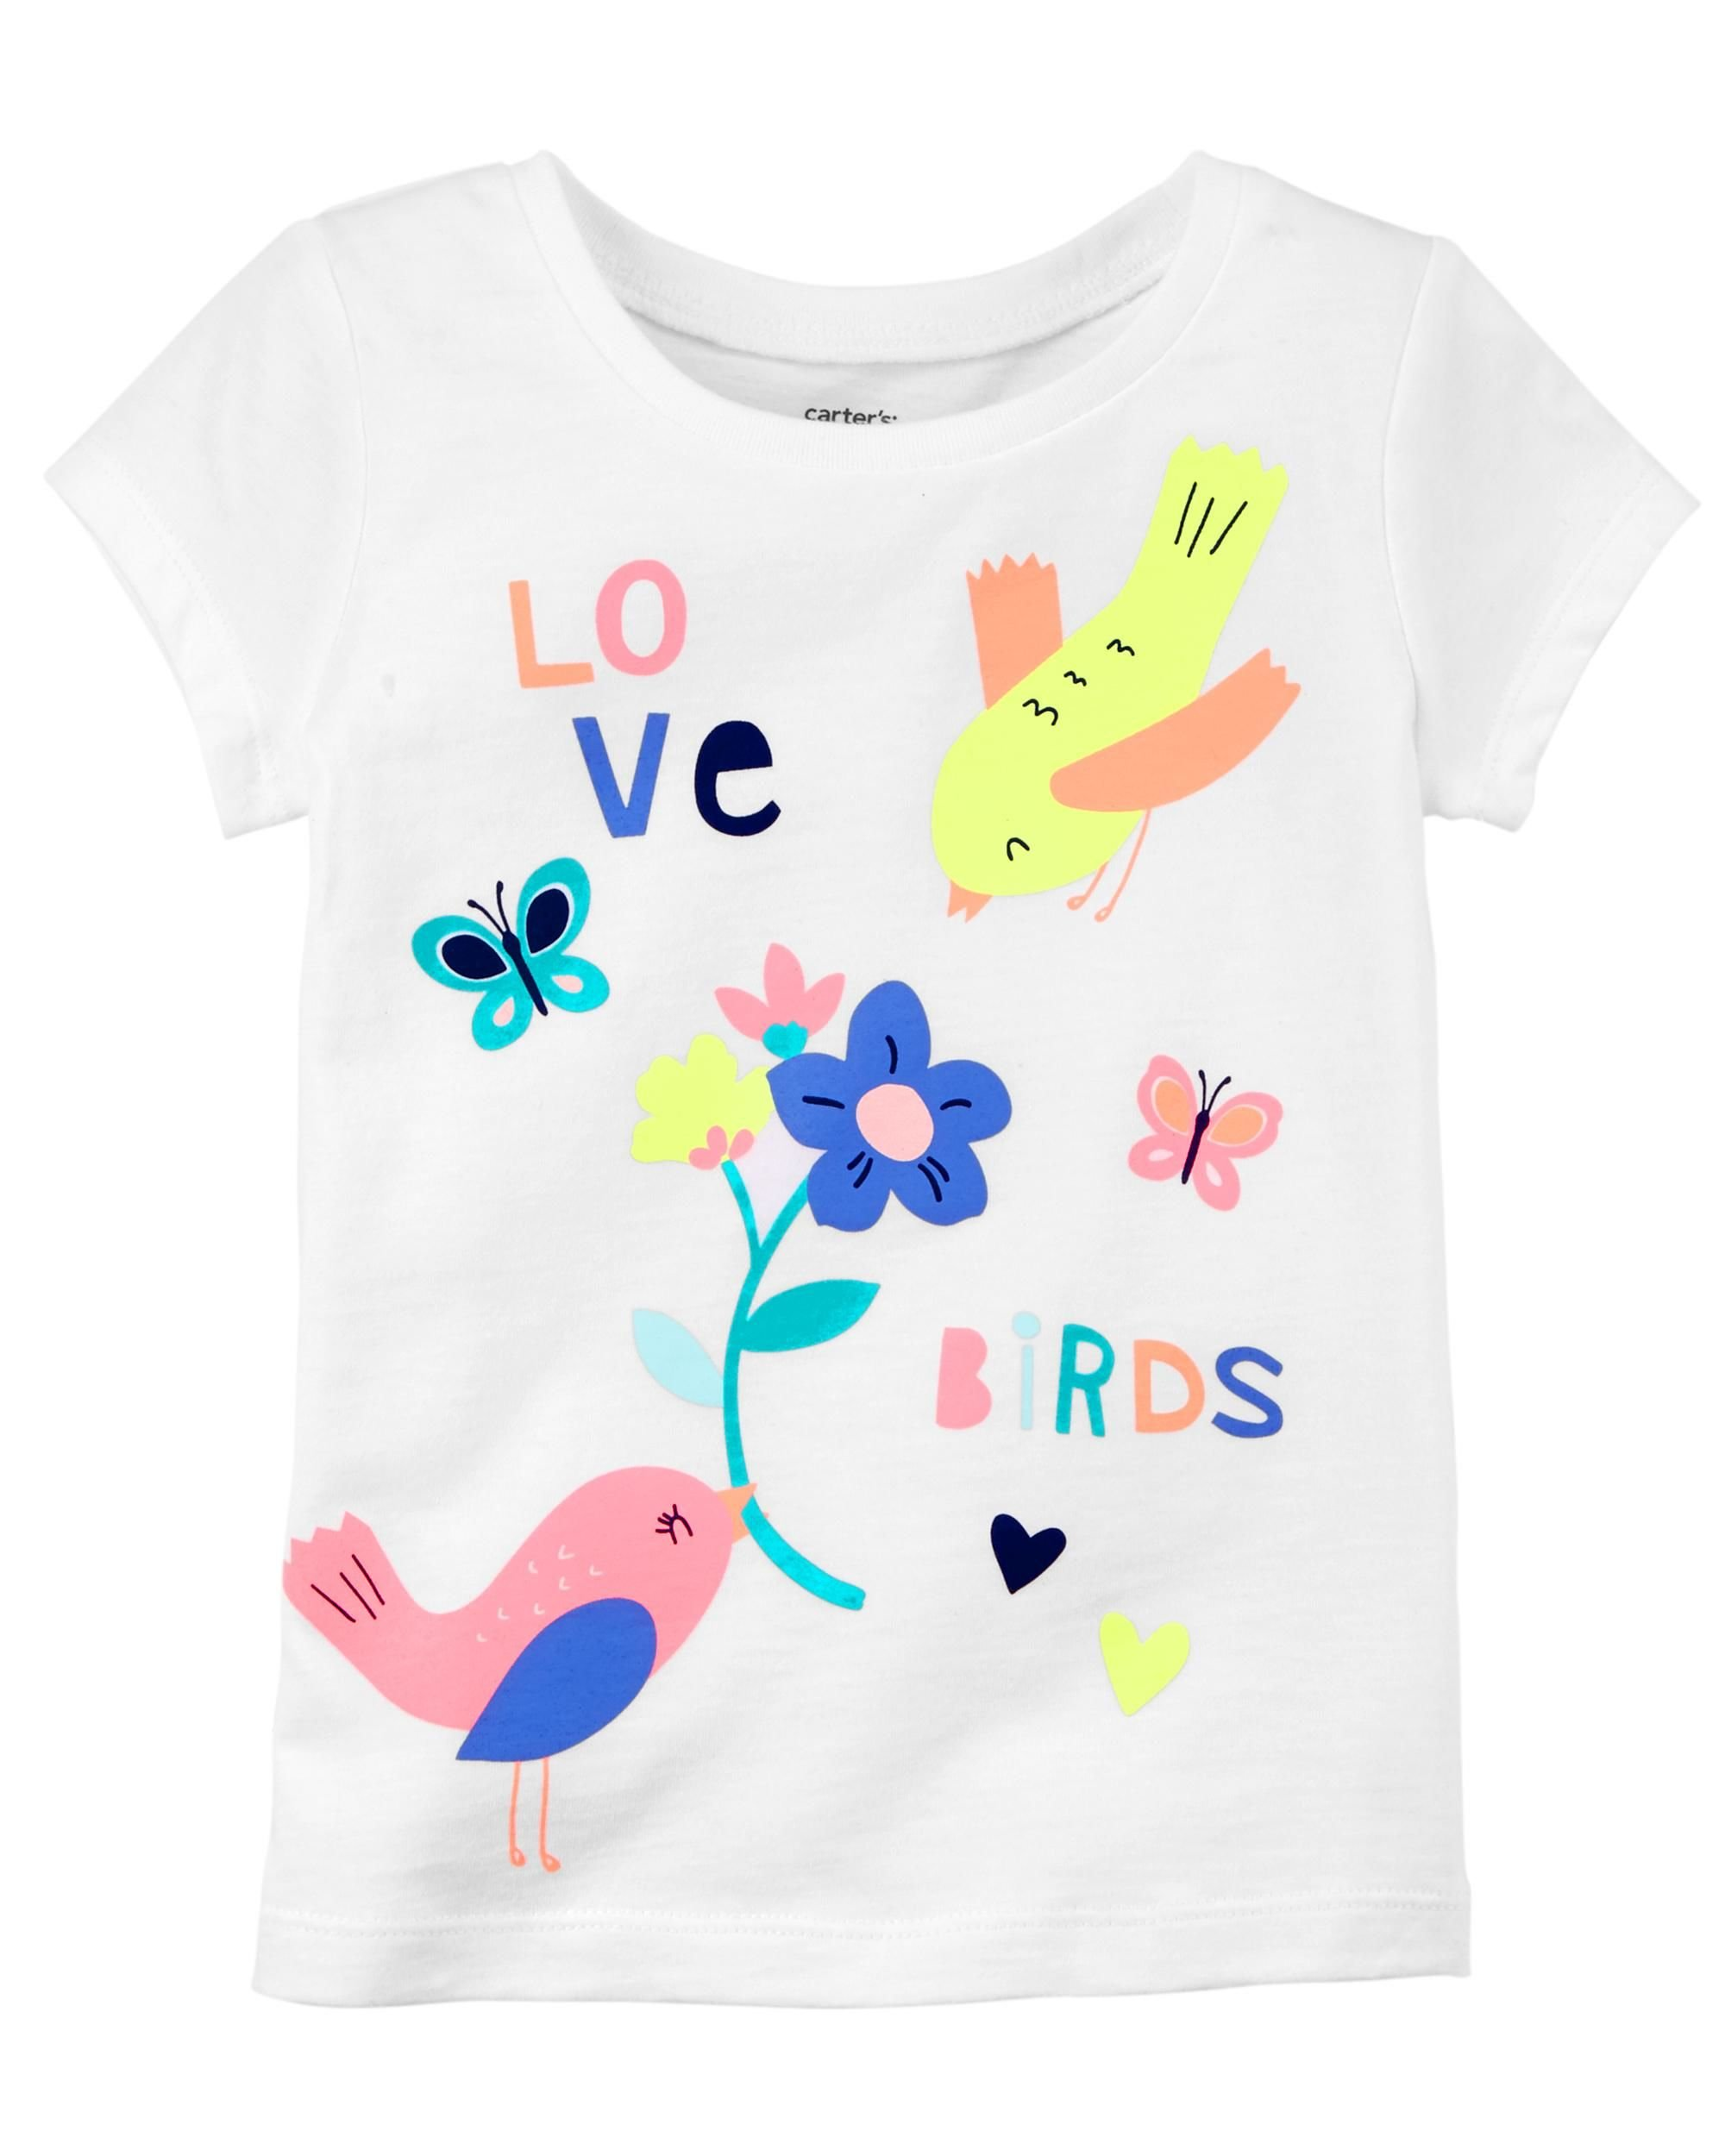 Carter's Girls' 2t-5t Short Sleeve Love Birds Tee ,White,5T